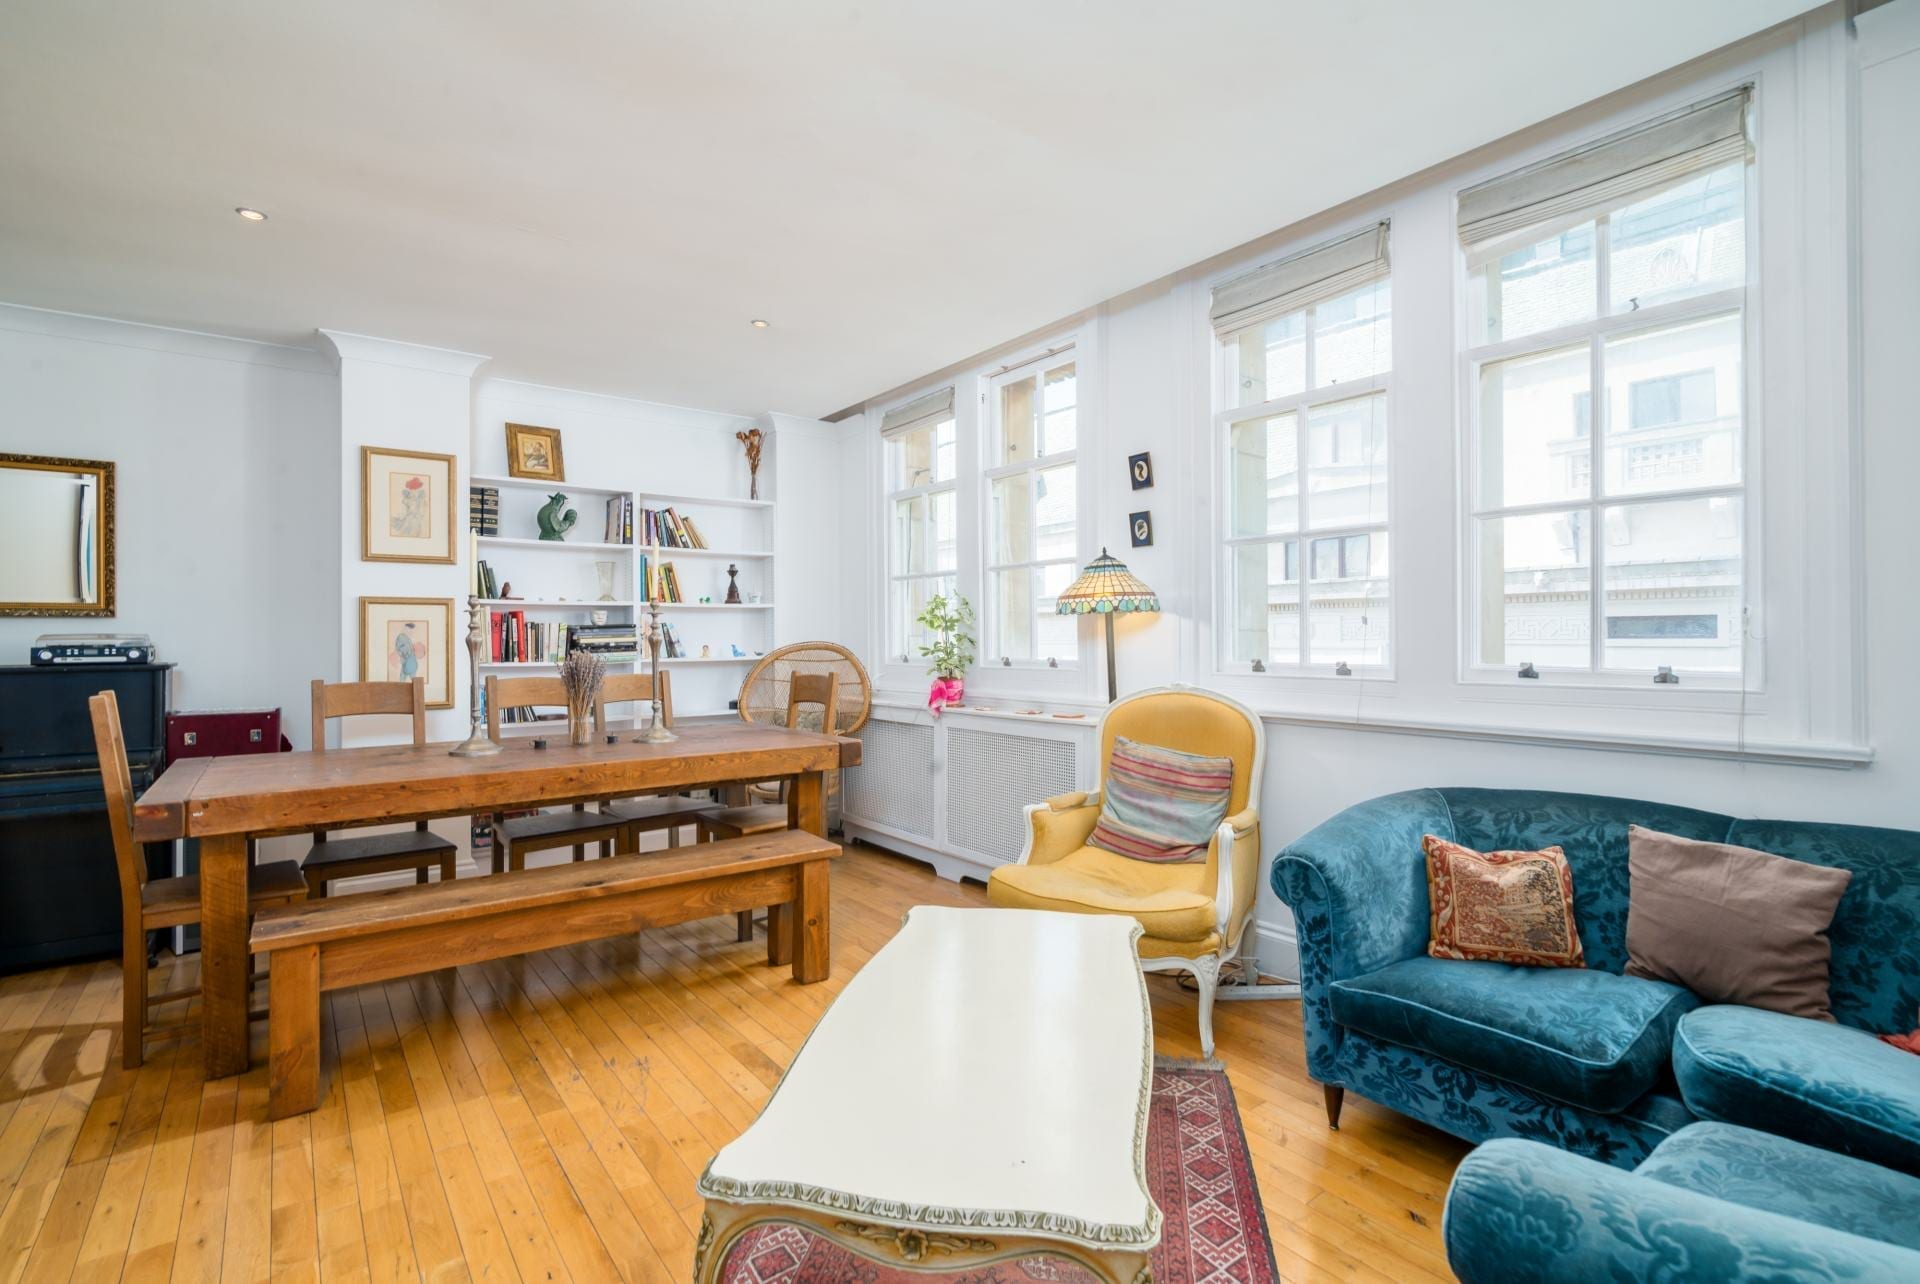 Interior Design Ideas for Airbnb Homes - Love Chic Living